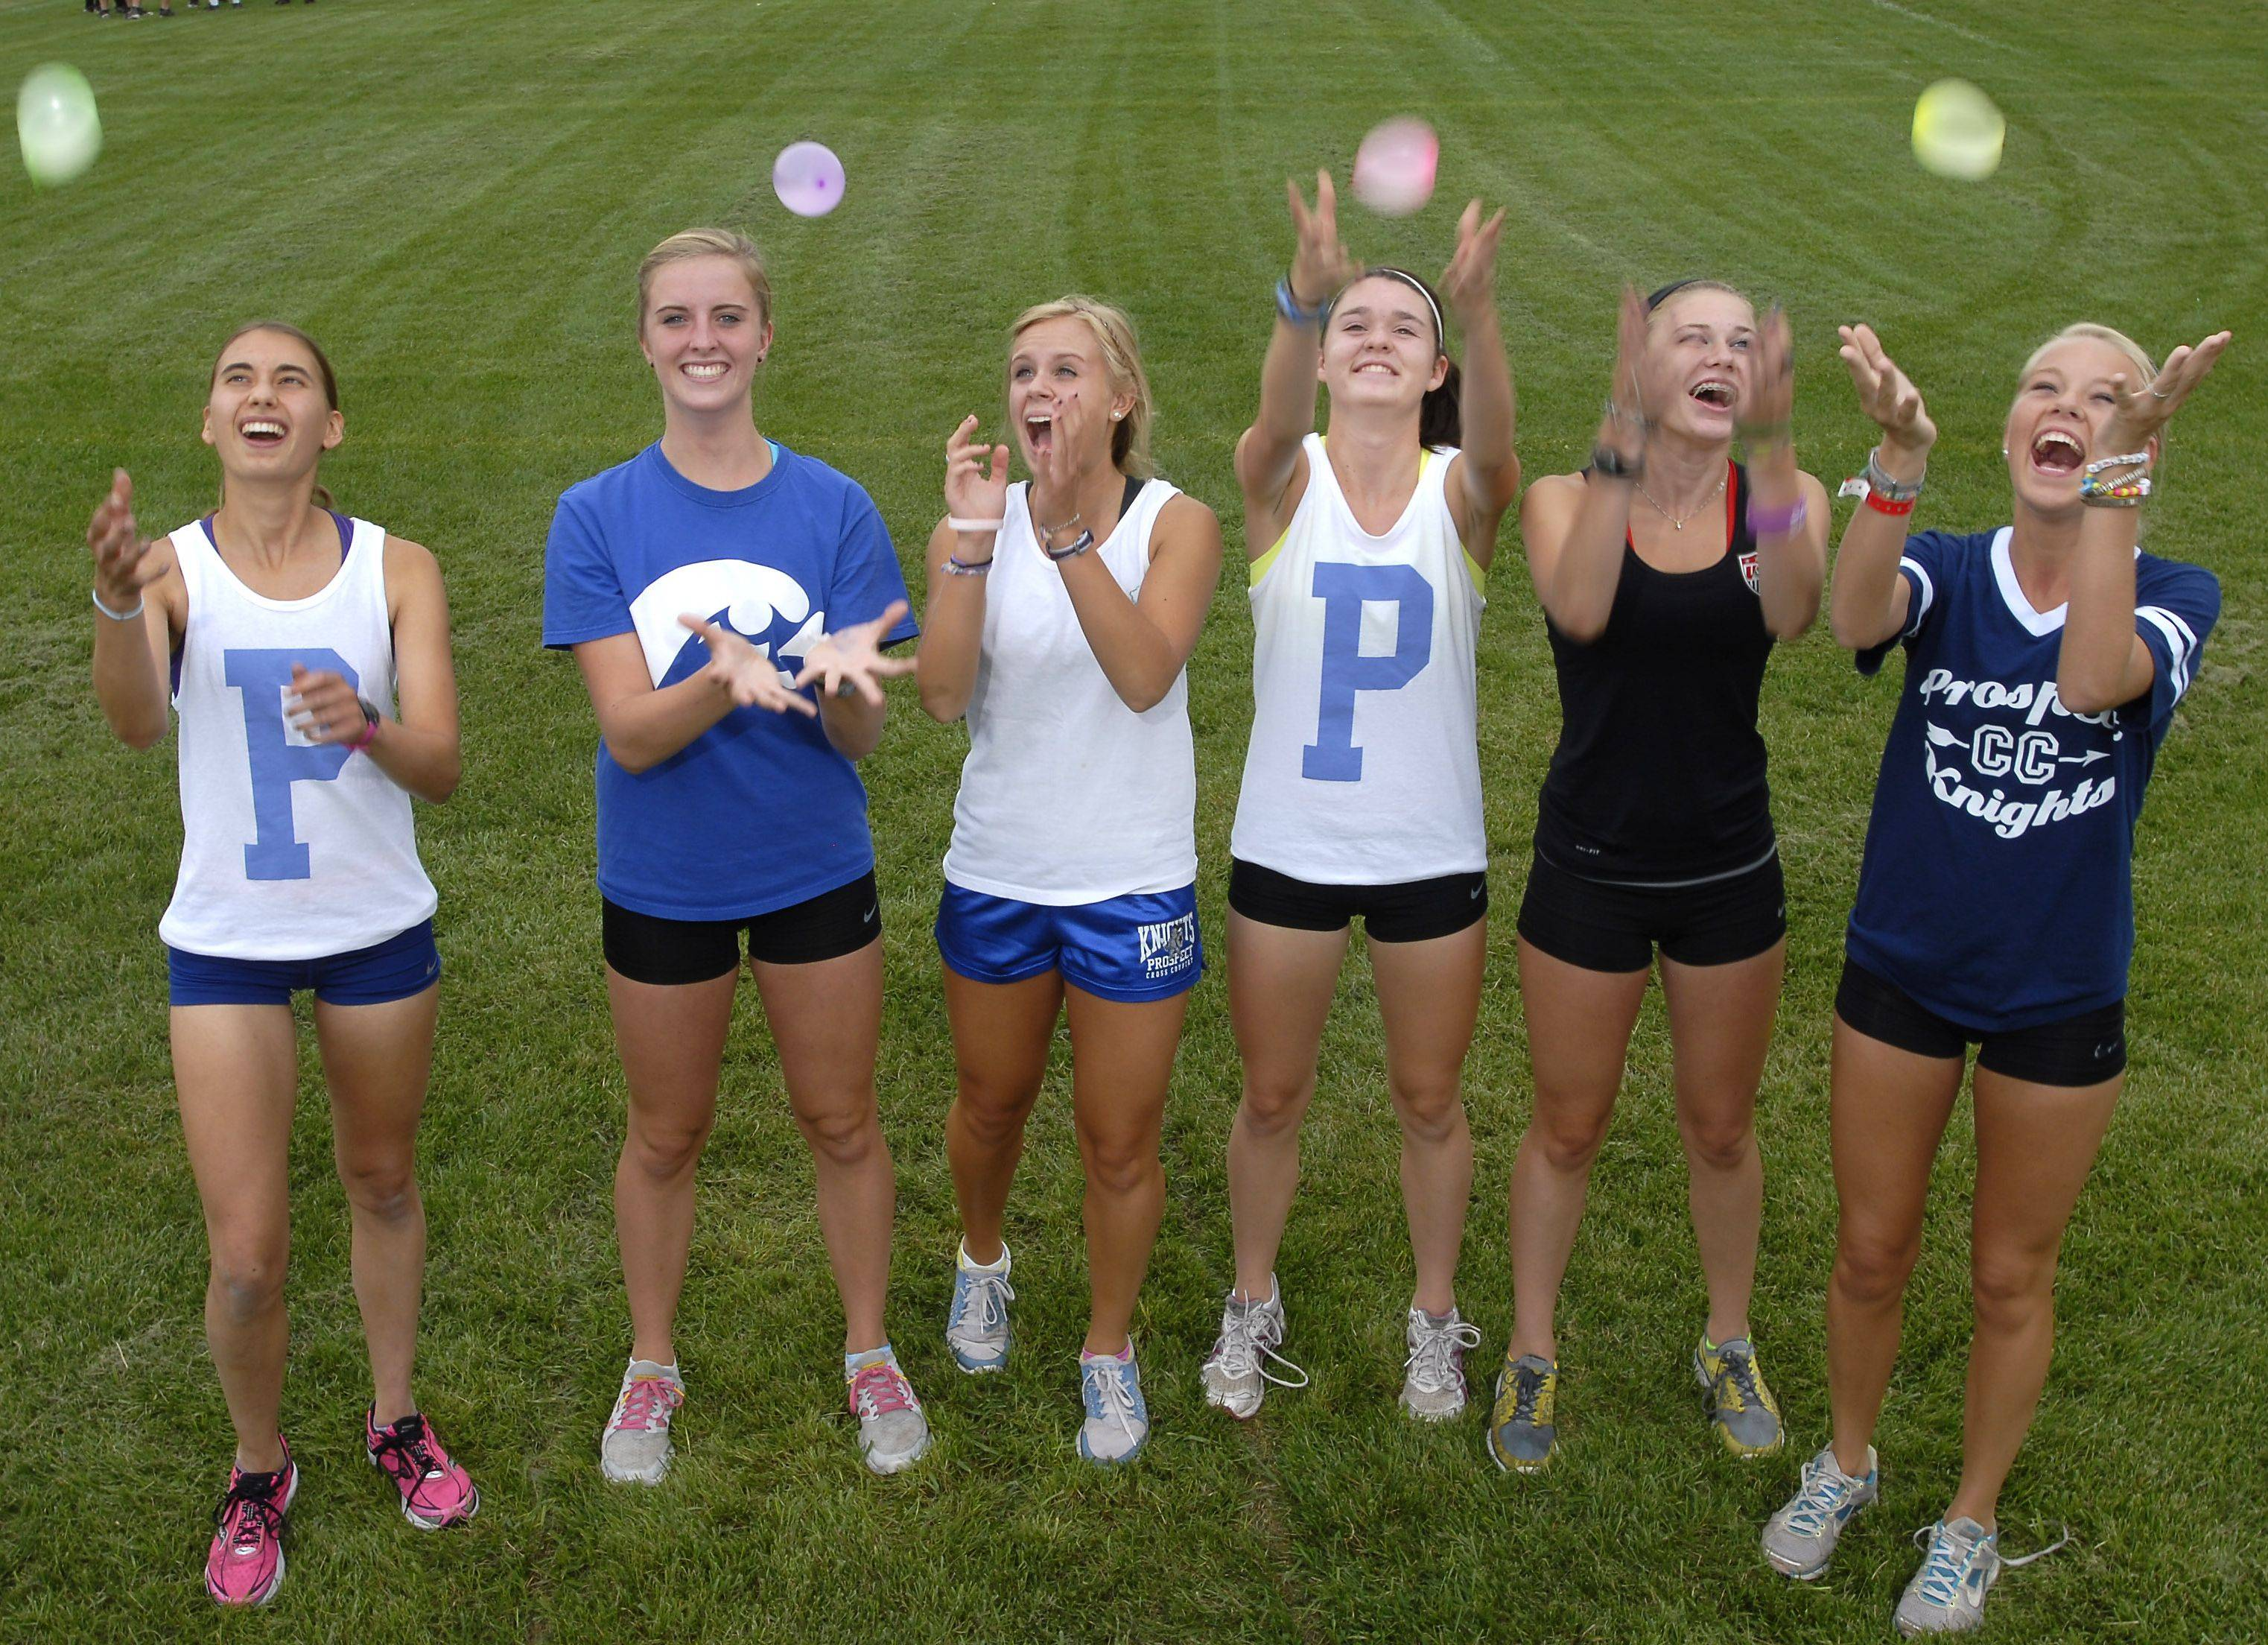 Prospect's state trophy-contending team includes from left, Kate Welsh, Brooke Wolfe, Lauren Poplawski, Rachel Henk, Katrina Leeney and Laura Maibuecher. A recent balloon-tossing, team-bonding episode only strengthened their resolve.